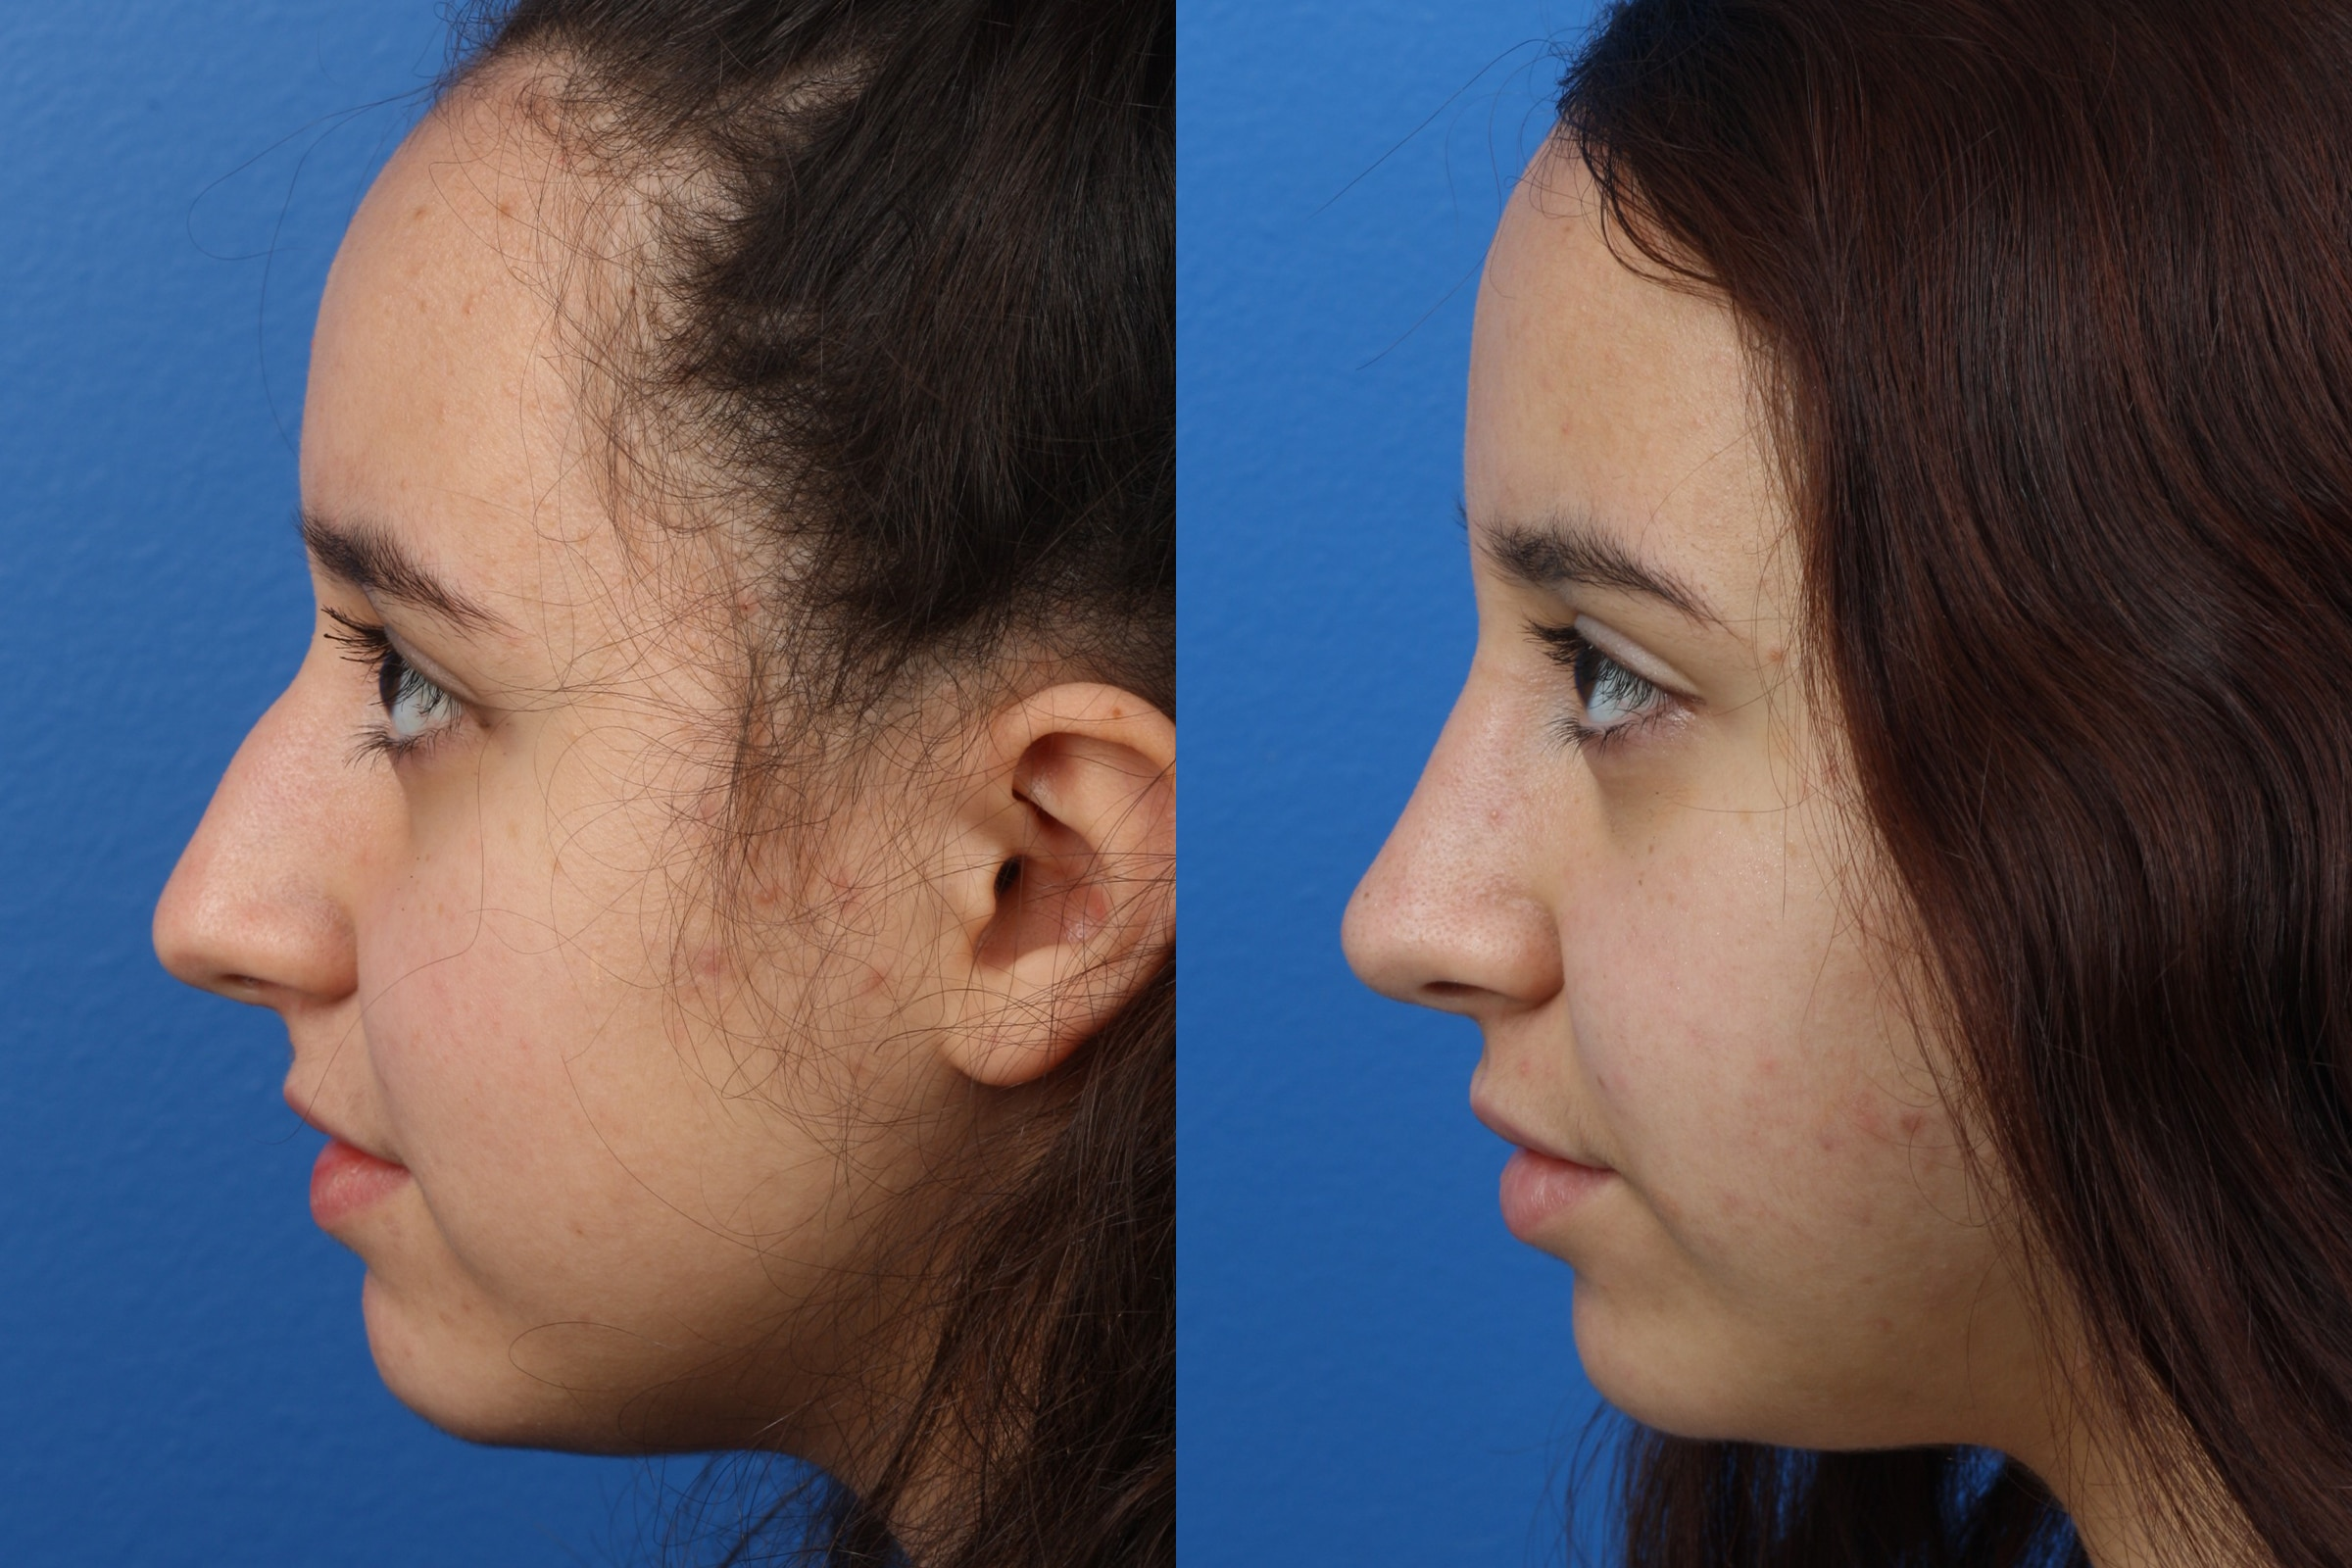 Rhinoplasty to Straighten the Bridge of a Female Patient by Dr. Miller